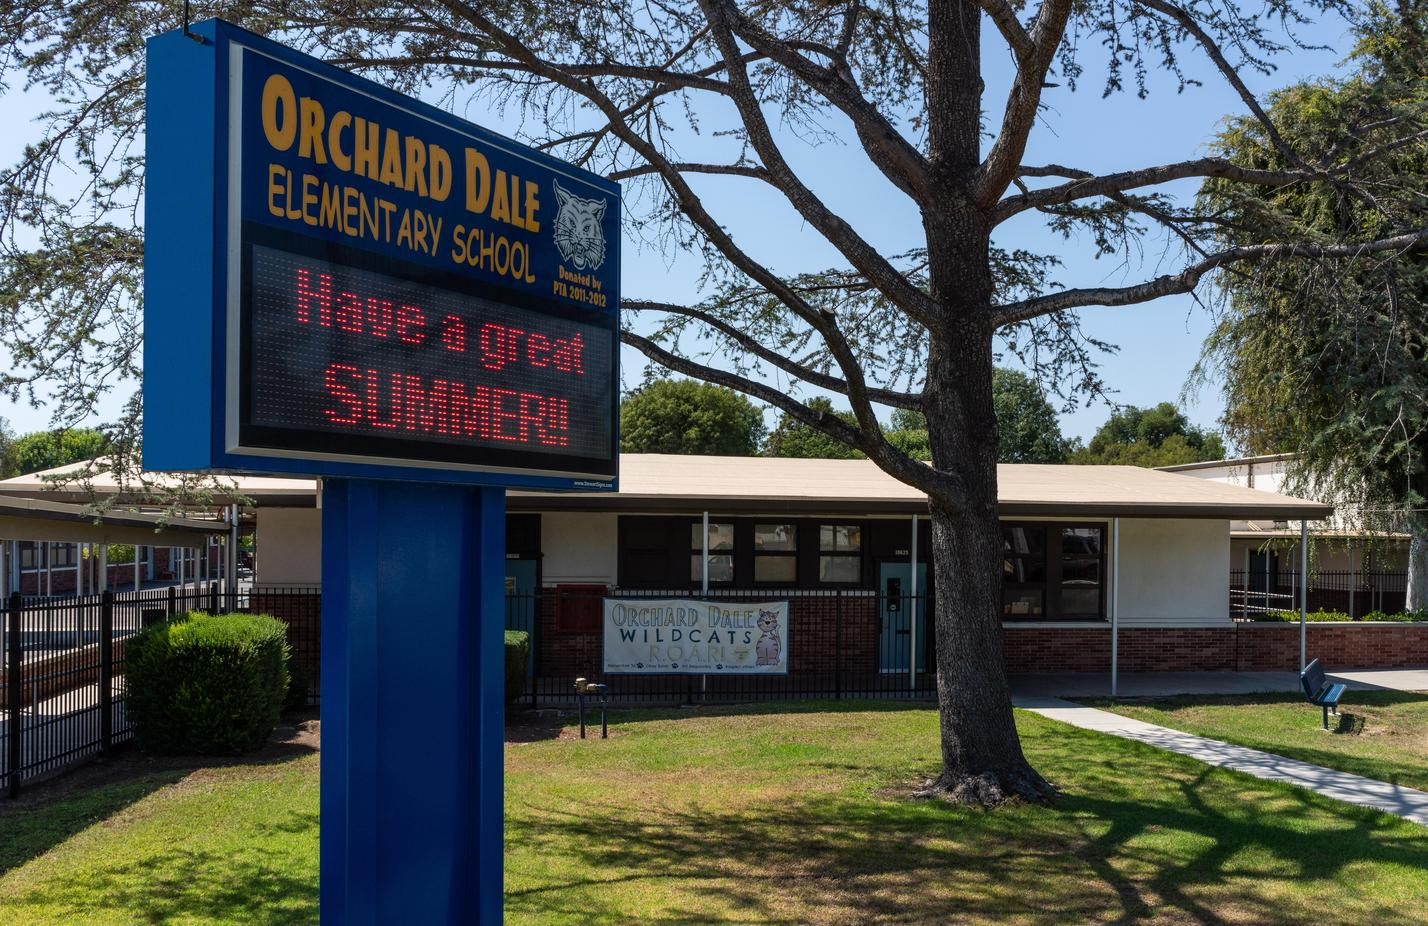 Orchard Dale Elementary School